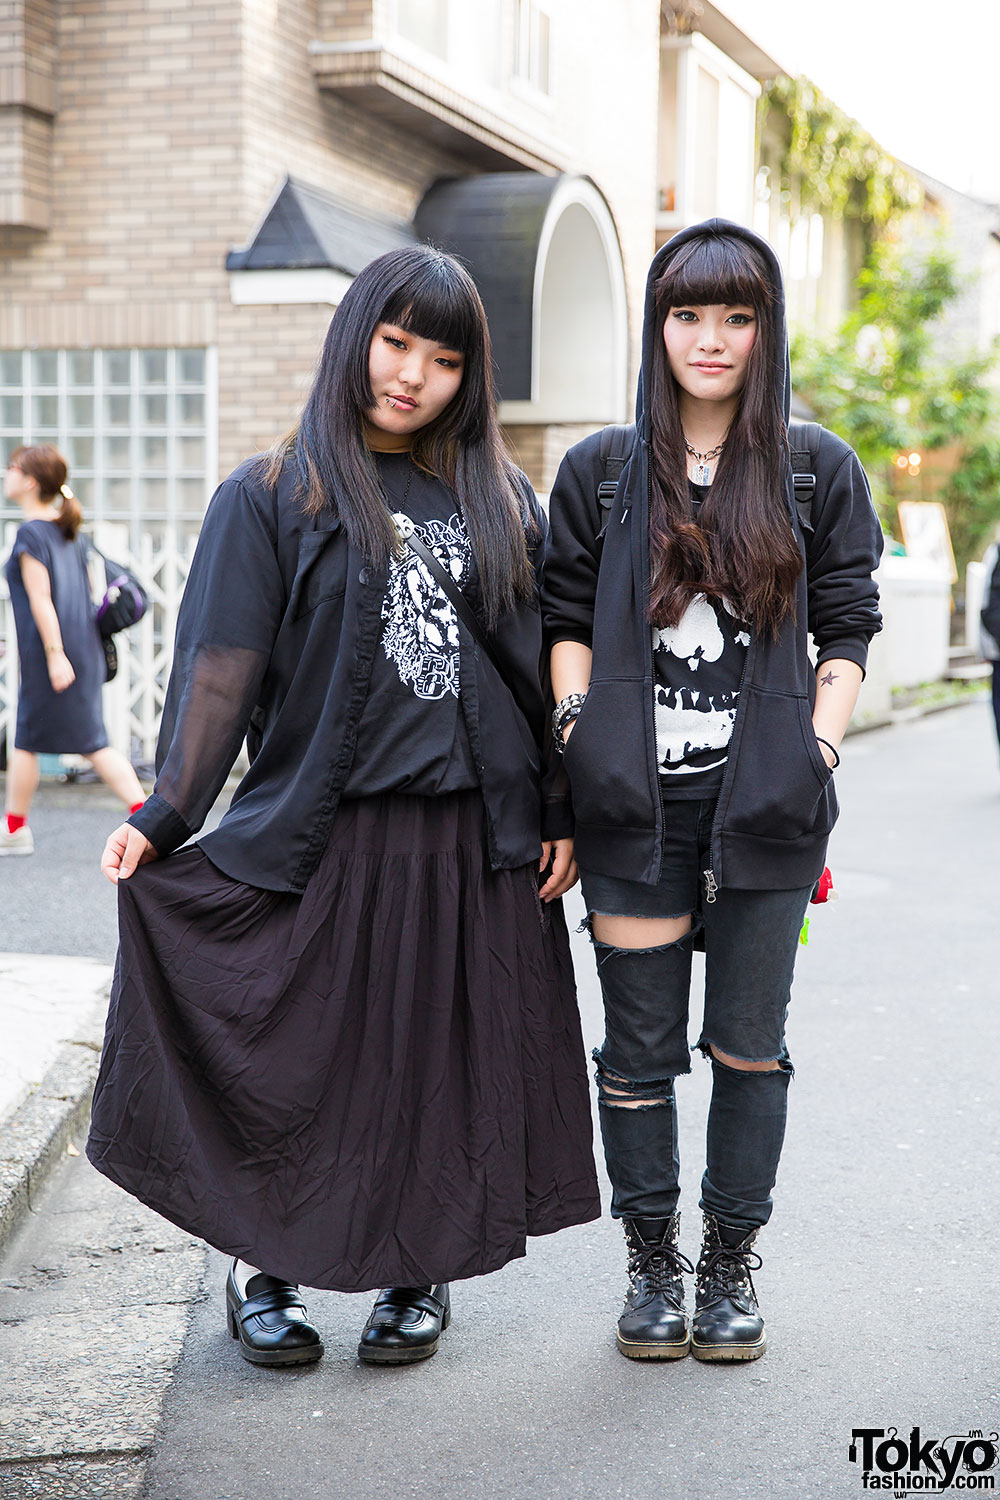 Harajuku Girls in Black Fashion w/ Hoodie, Ripped Jeans, Boots ...